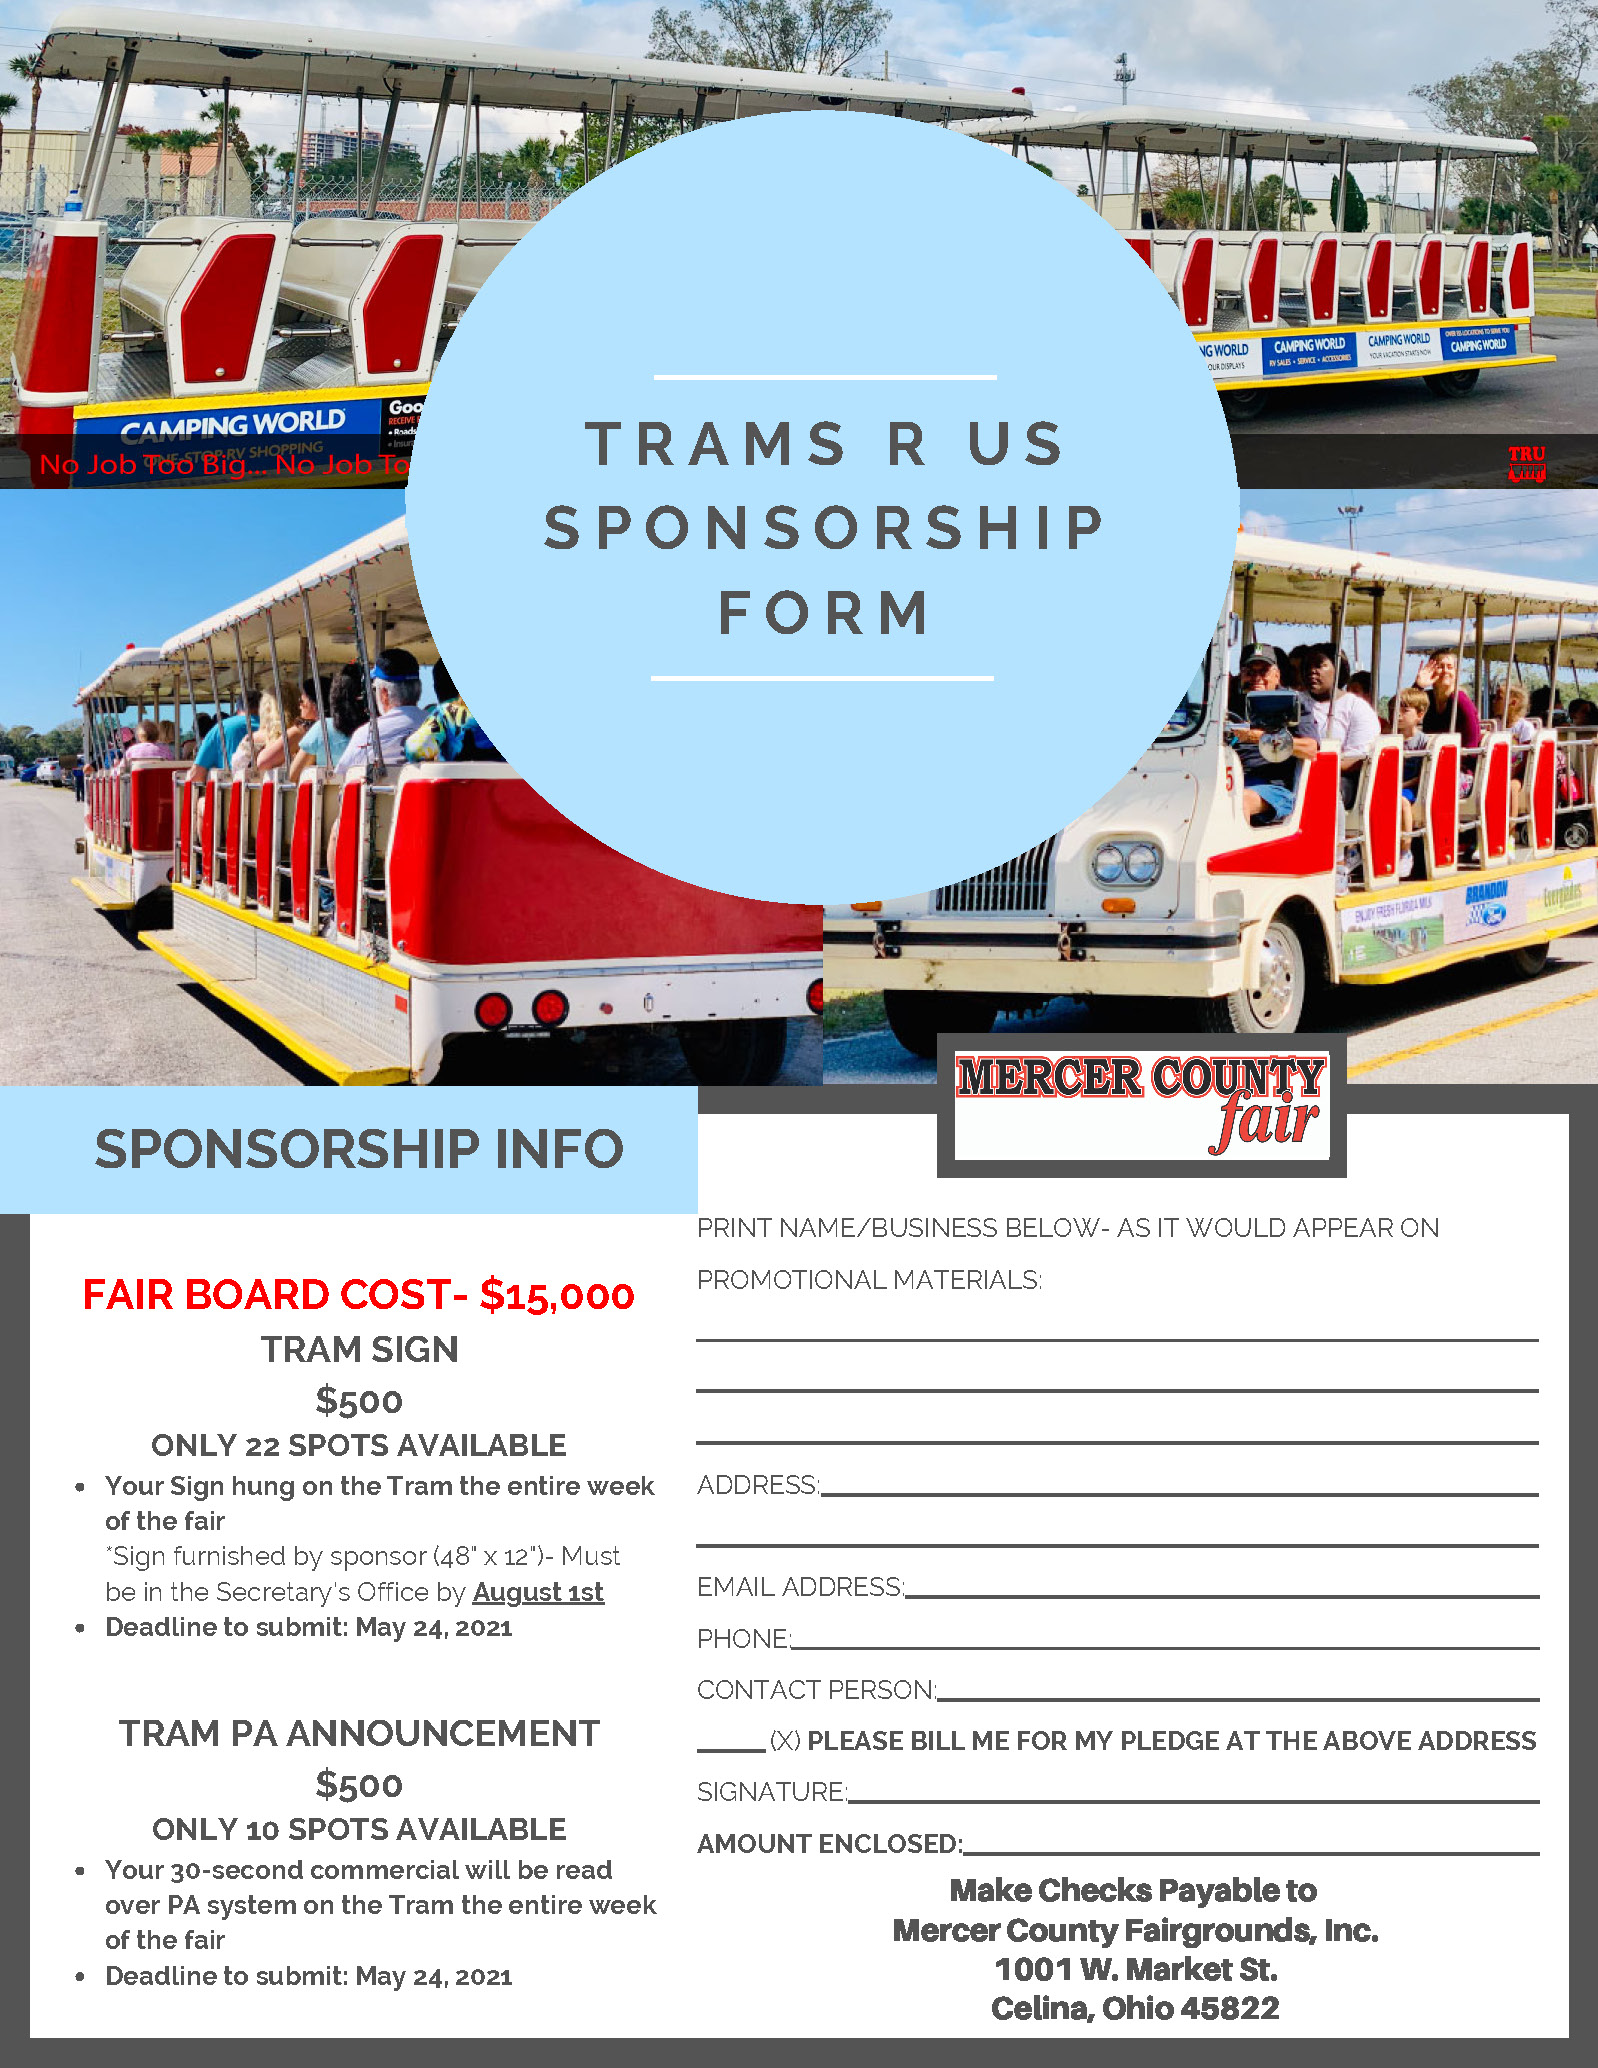 Trams R Us Sponsorship Form